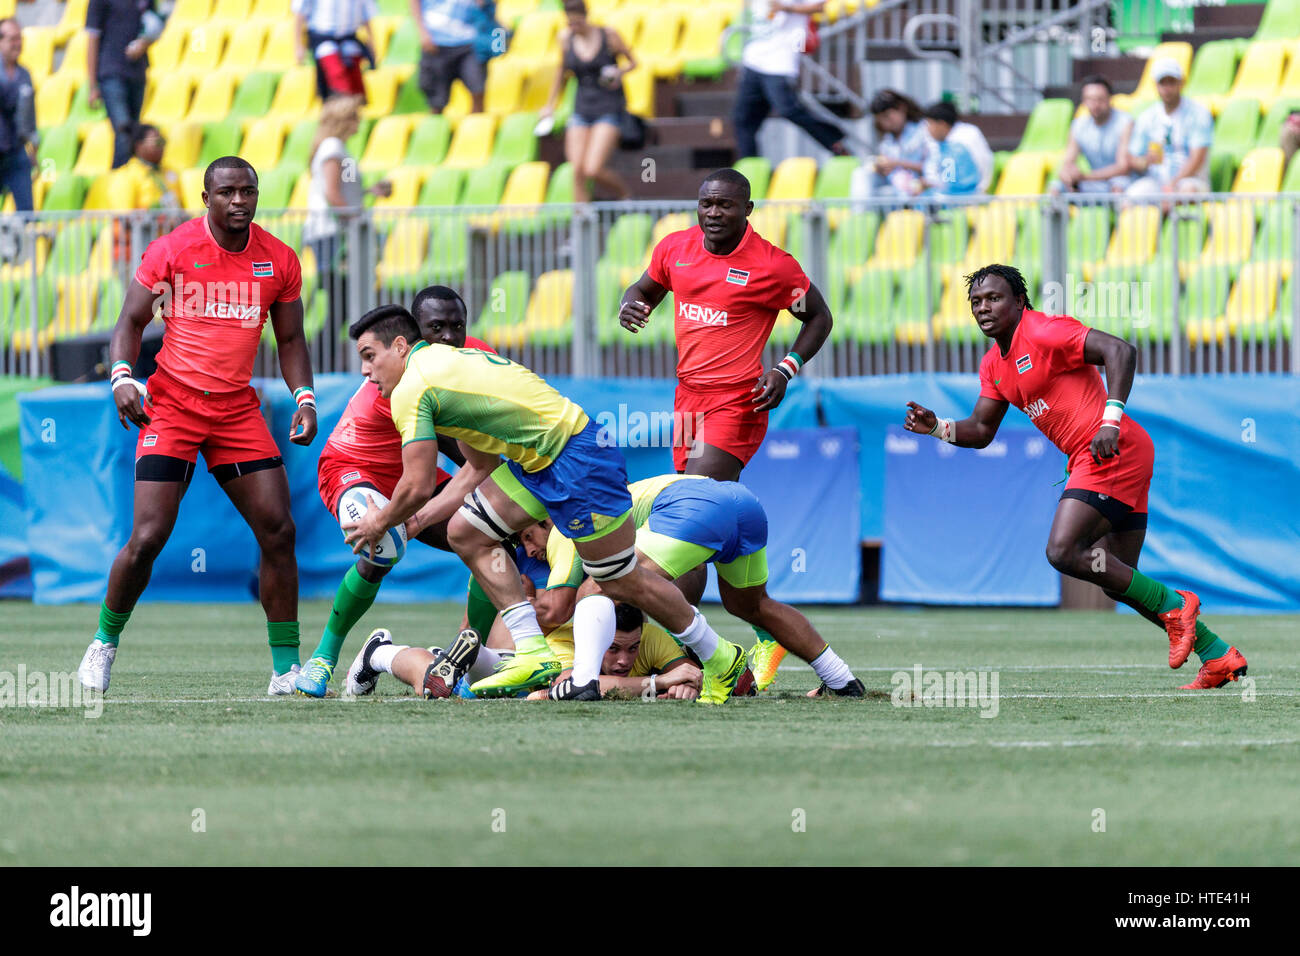 Rio de Janeiro, Brazil. 11 August 2016 Felipe Sancery (BRA) competes in the Men's  Rugby Sevens in a match vs. - Stock Image